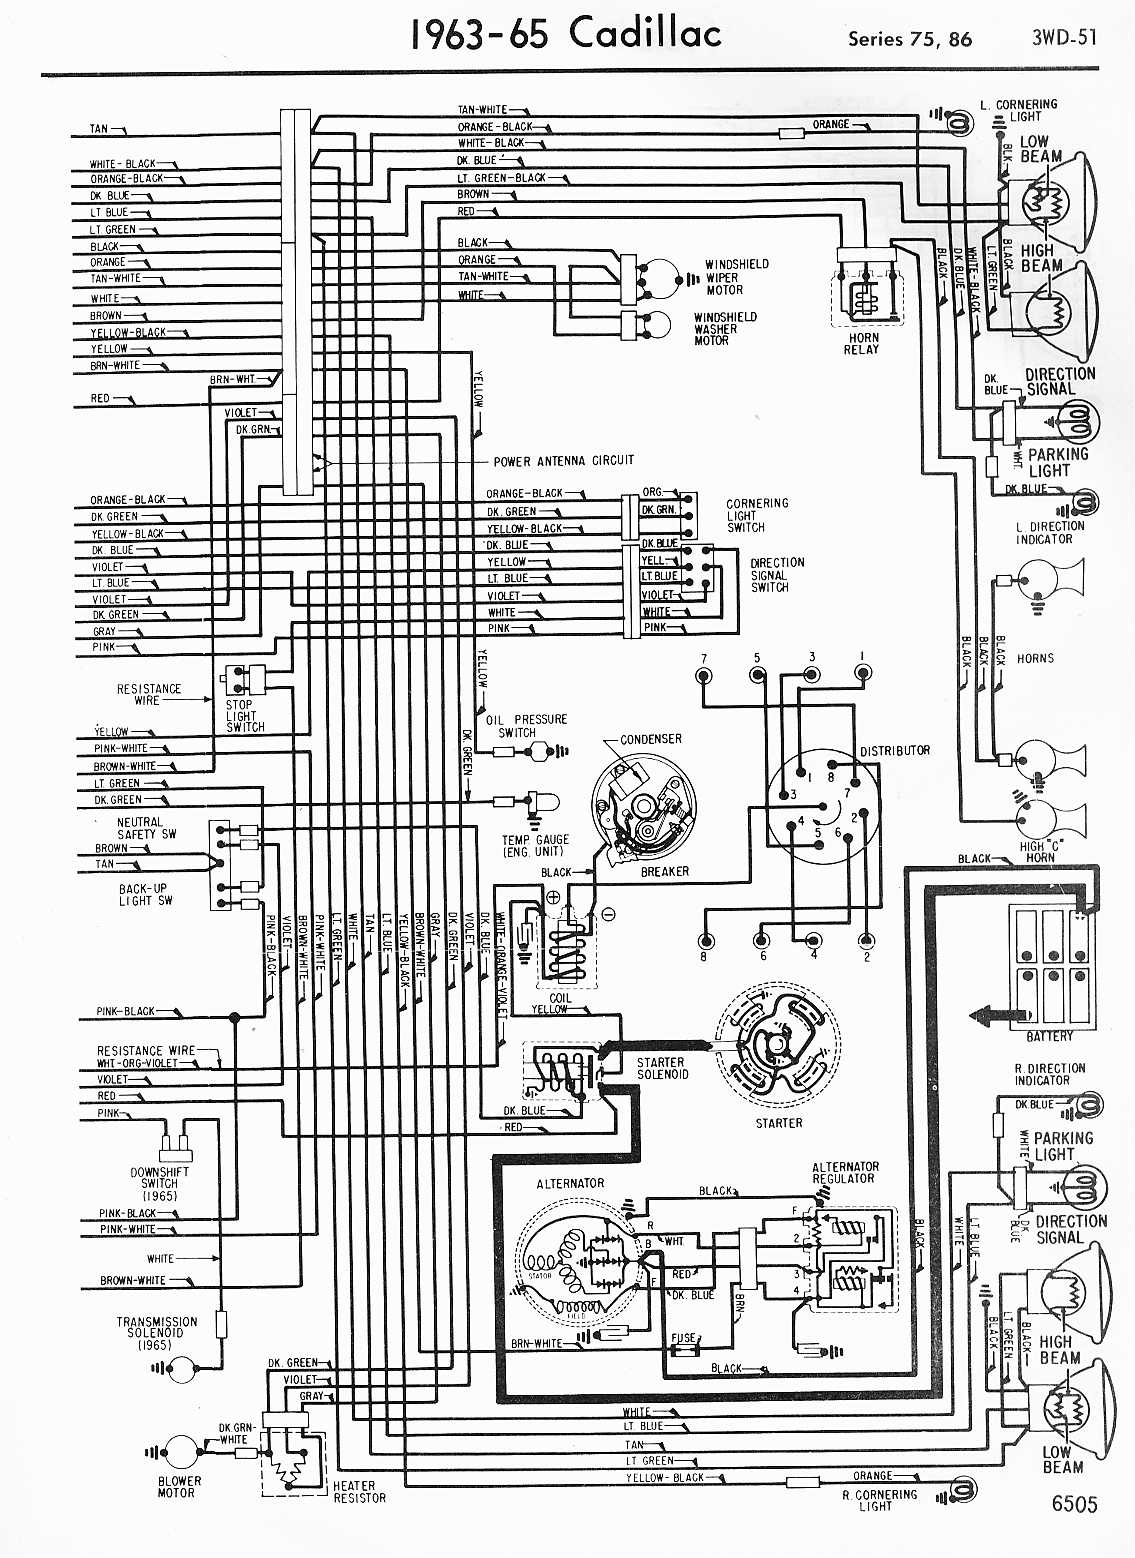 MWireCadi65_3WD 051 cadillac wiring diagrams 1957 1965 2000 Cadillac Escalade Radio Comes On and Off at gsmx.co